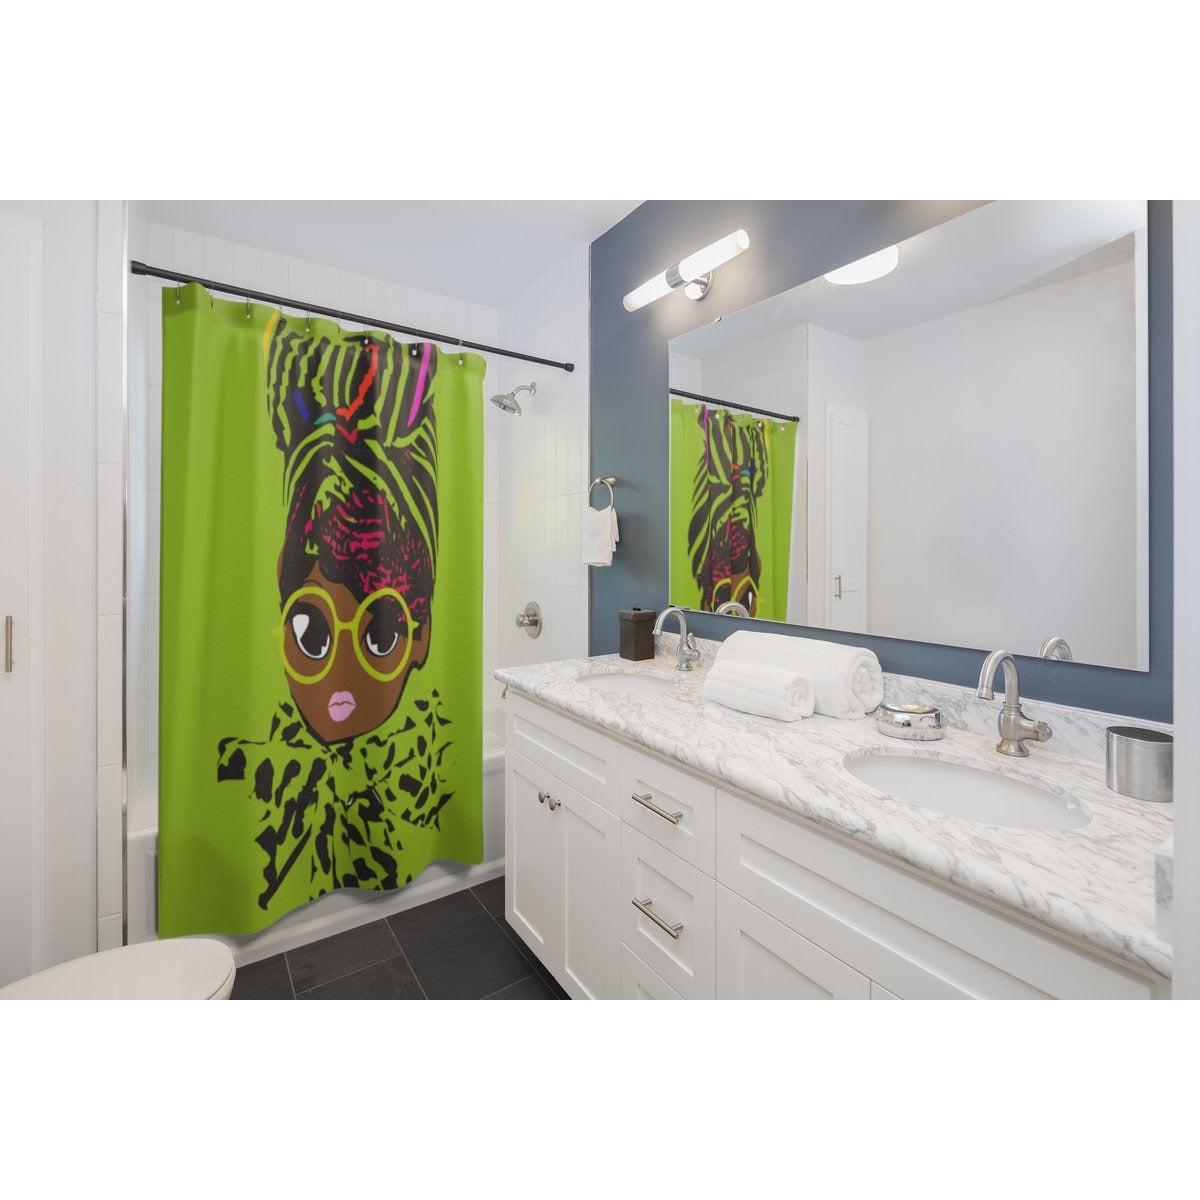 Geek Shower Curtains-Green